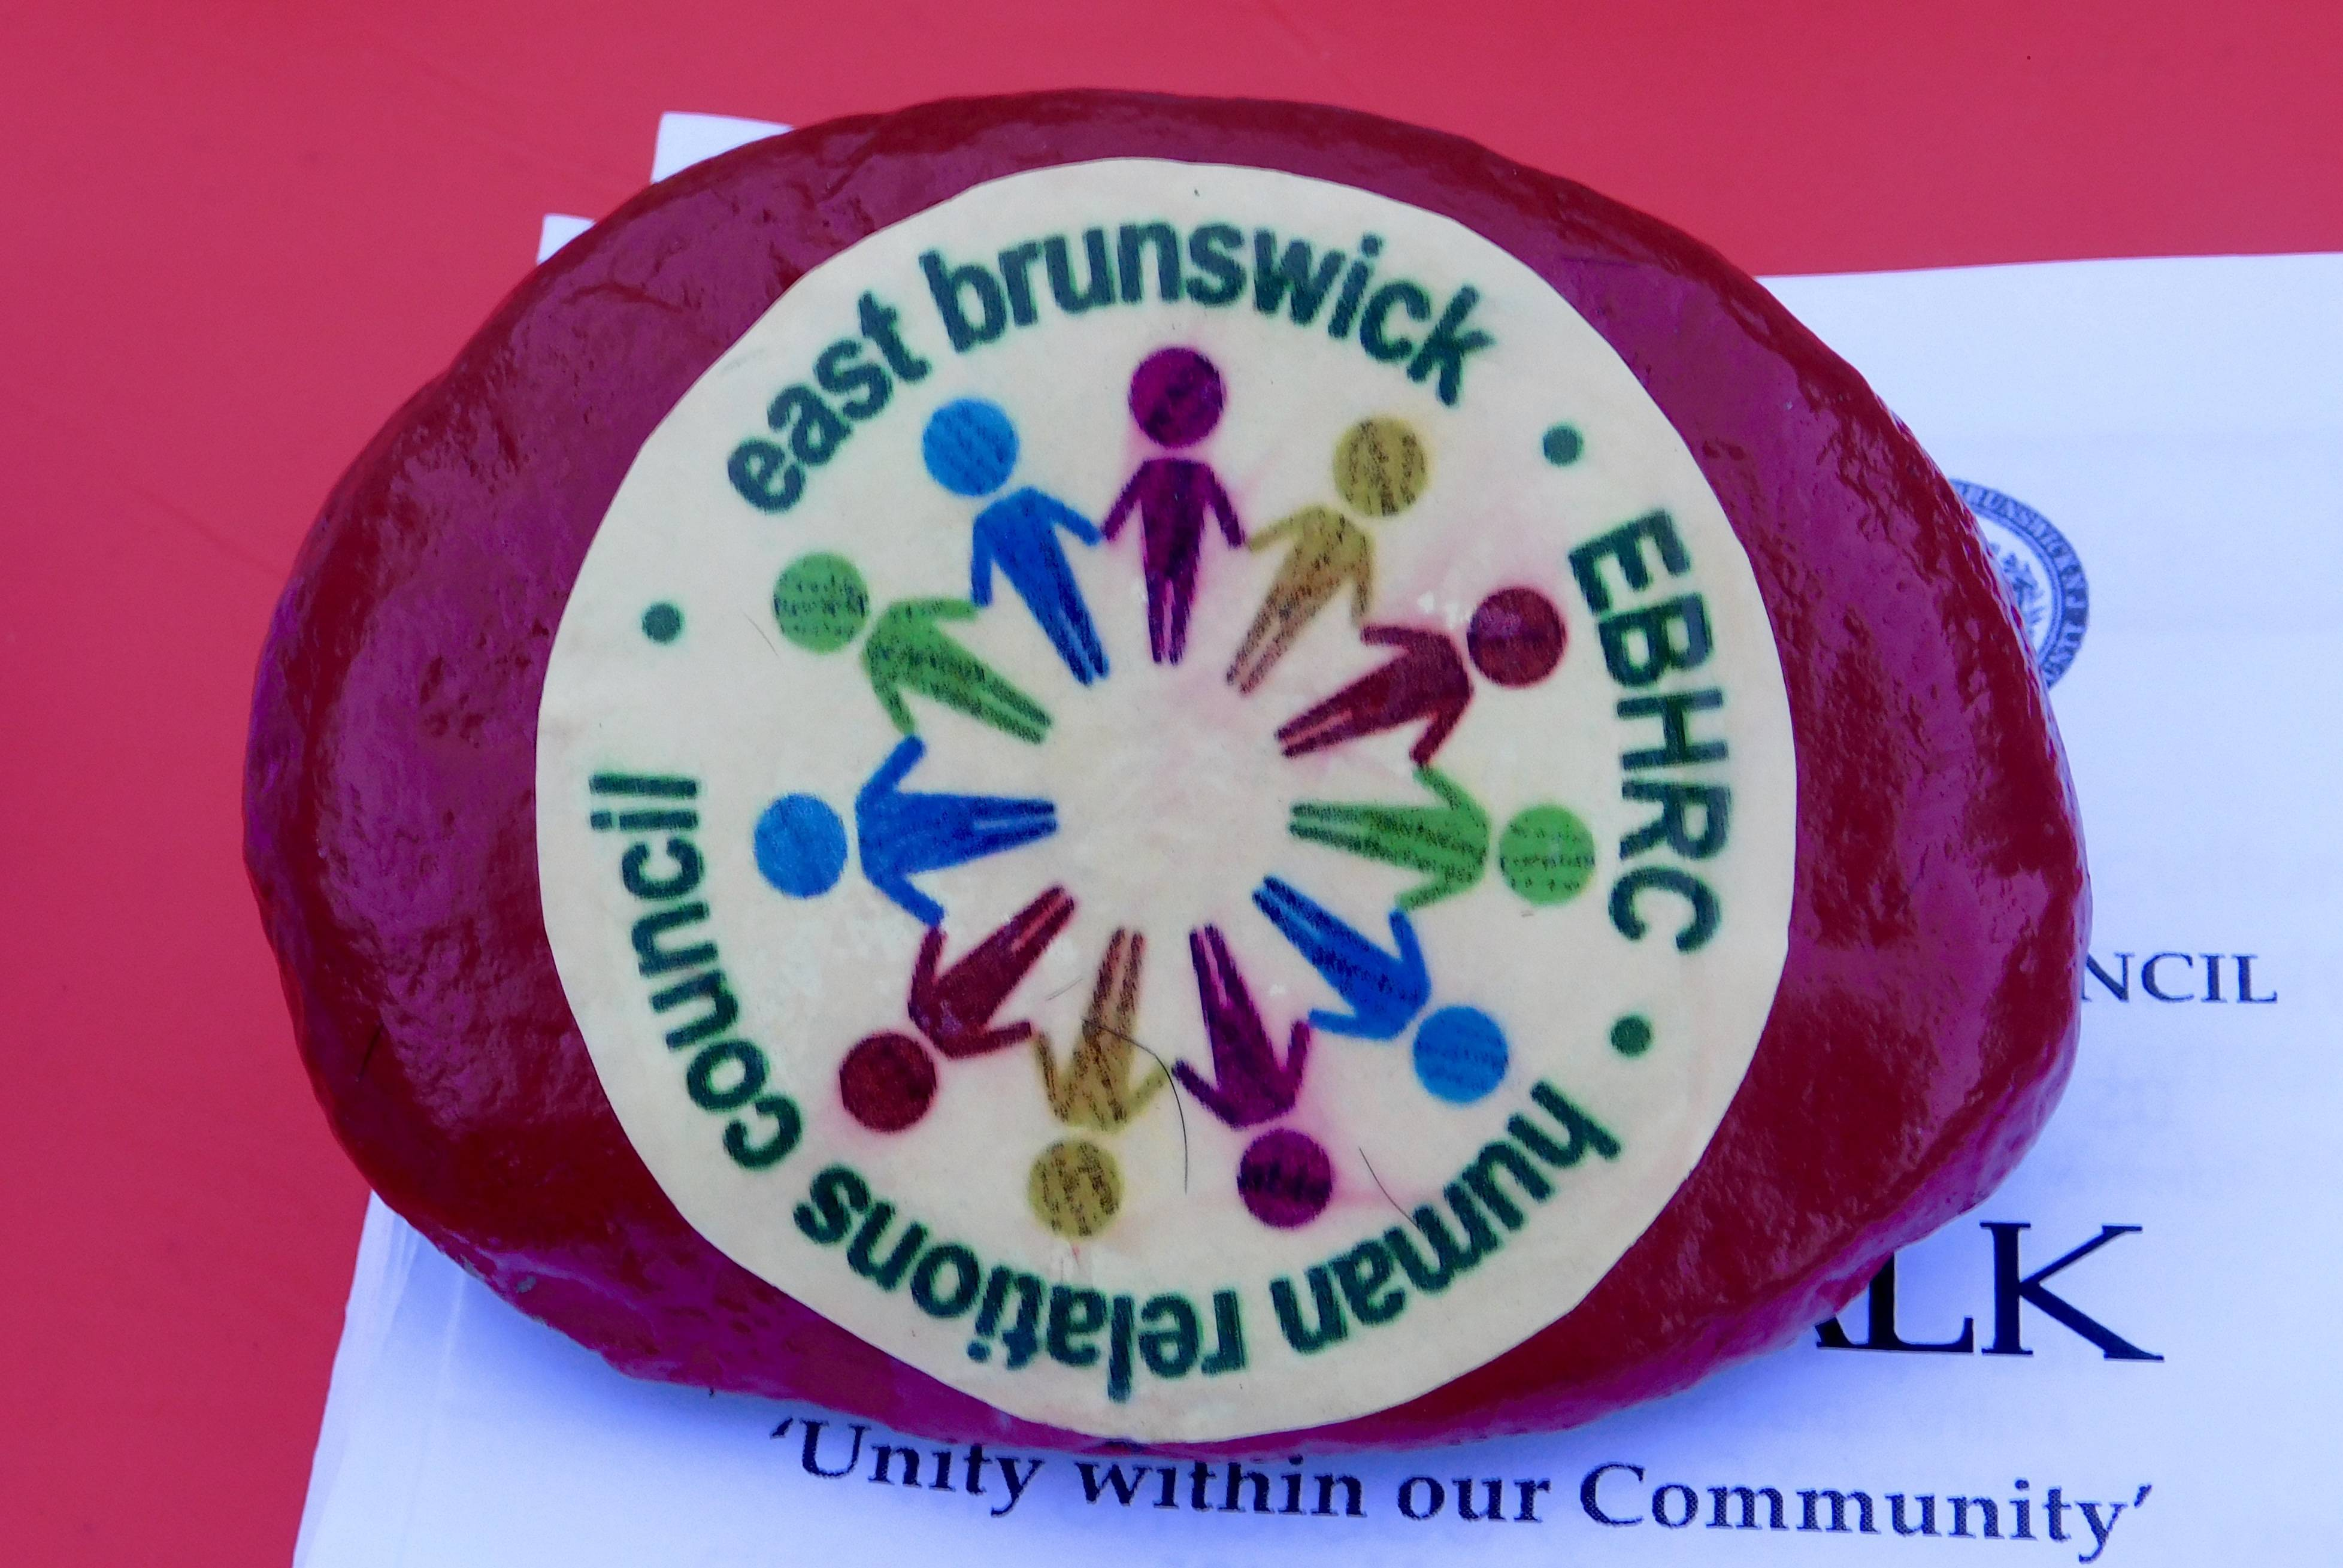 The east brunswick human relations council sponsored the unity walk credits tapinto east brunswick east brunswick nj